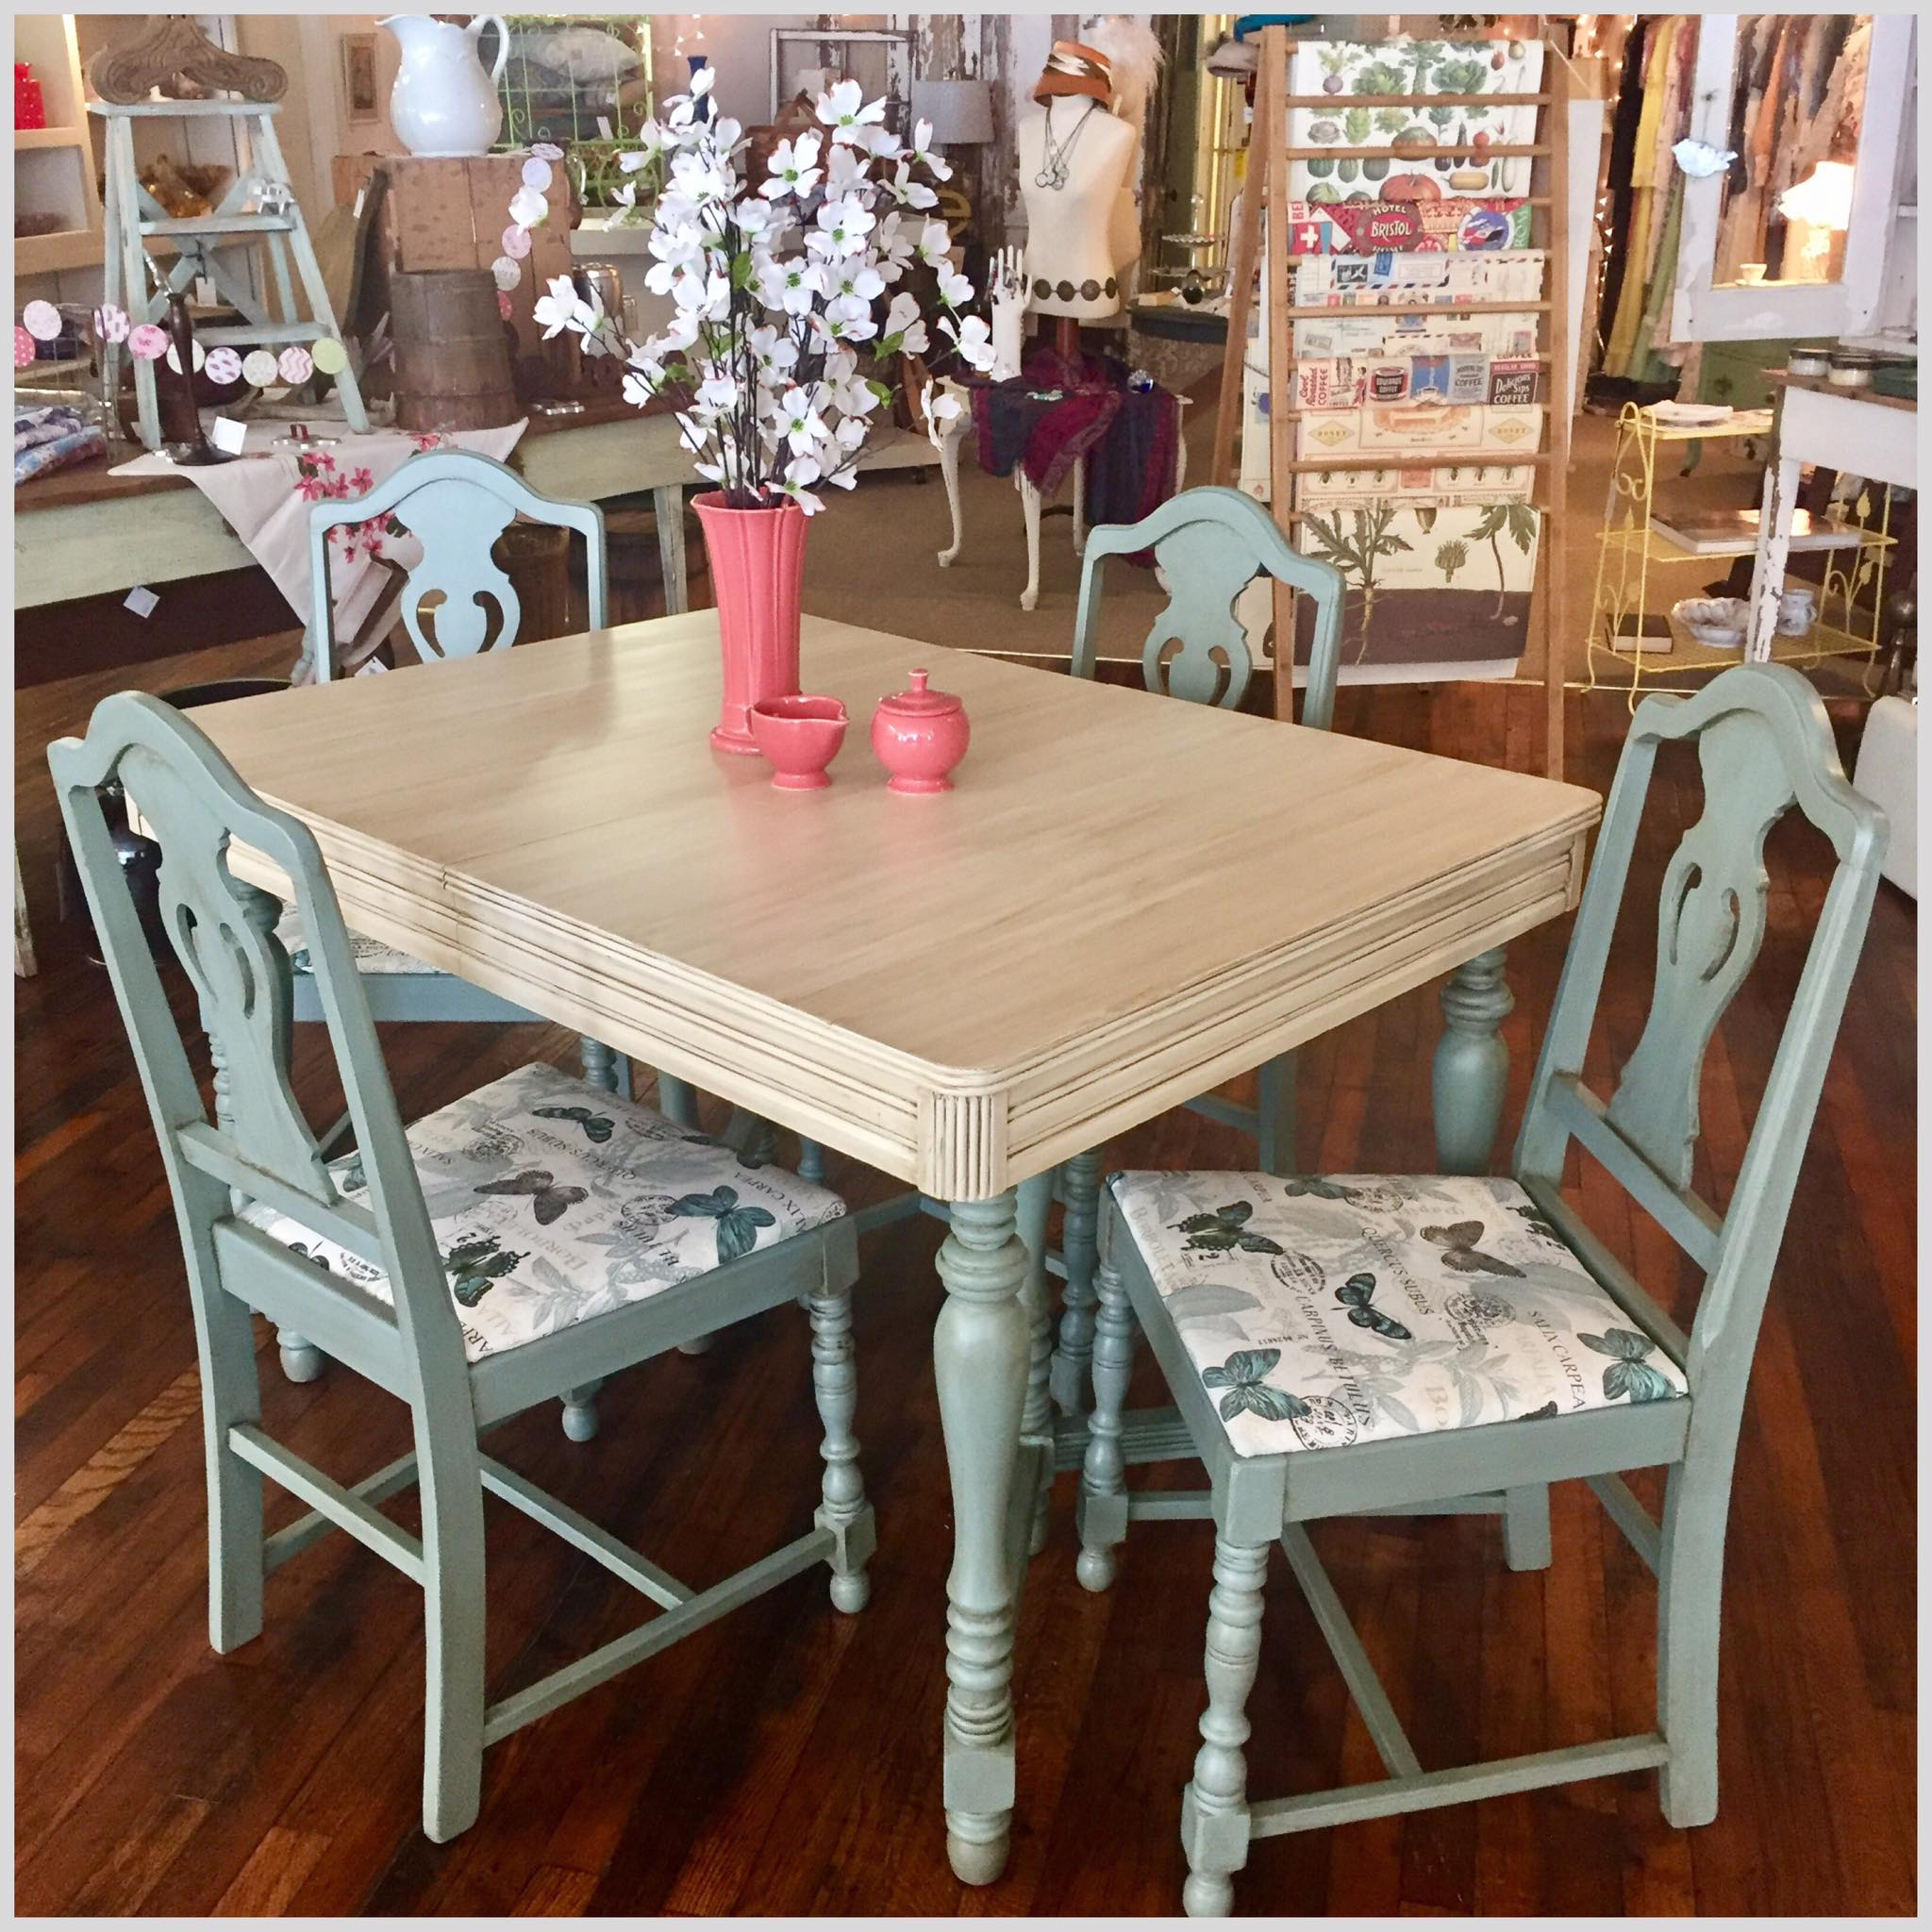 Dining table and chairs finished in Drop Cloth and Vintage Duck Egg with Van Dyke Brown Glaze